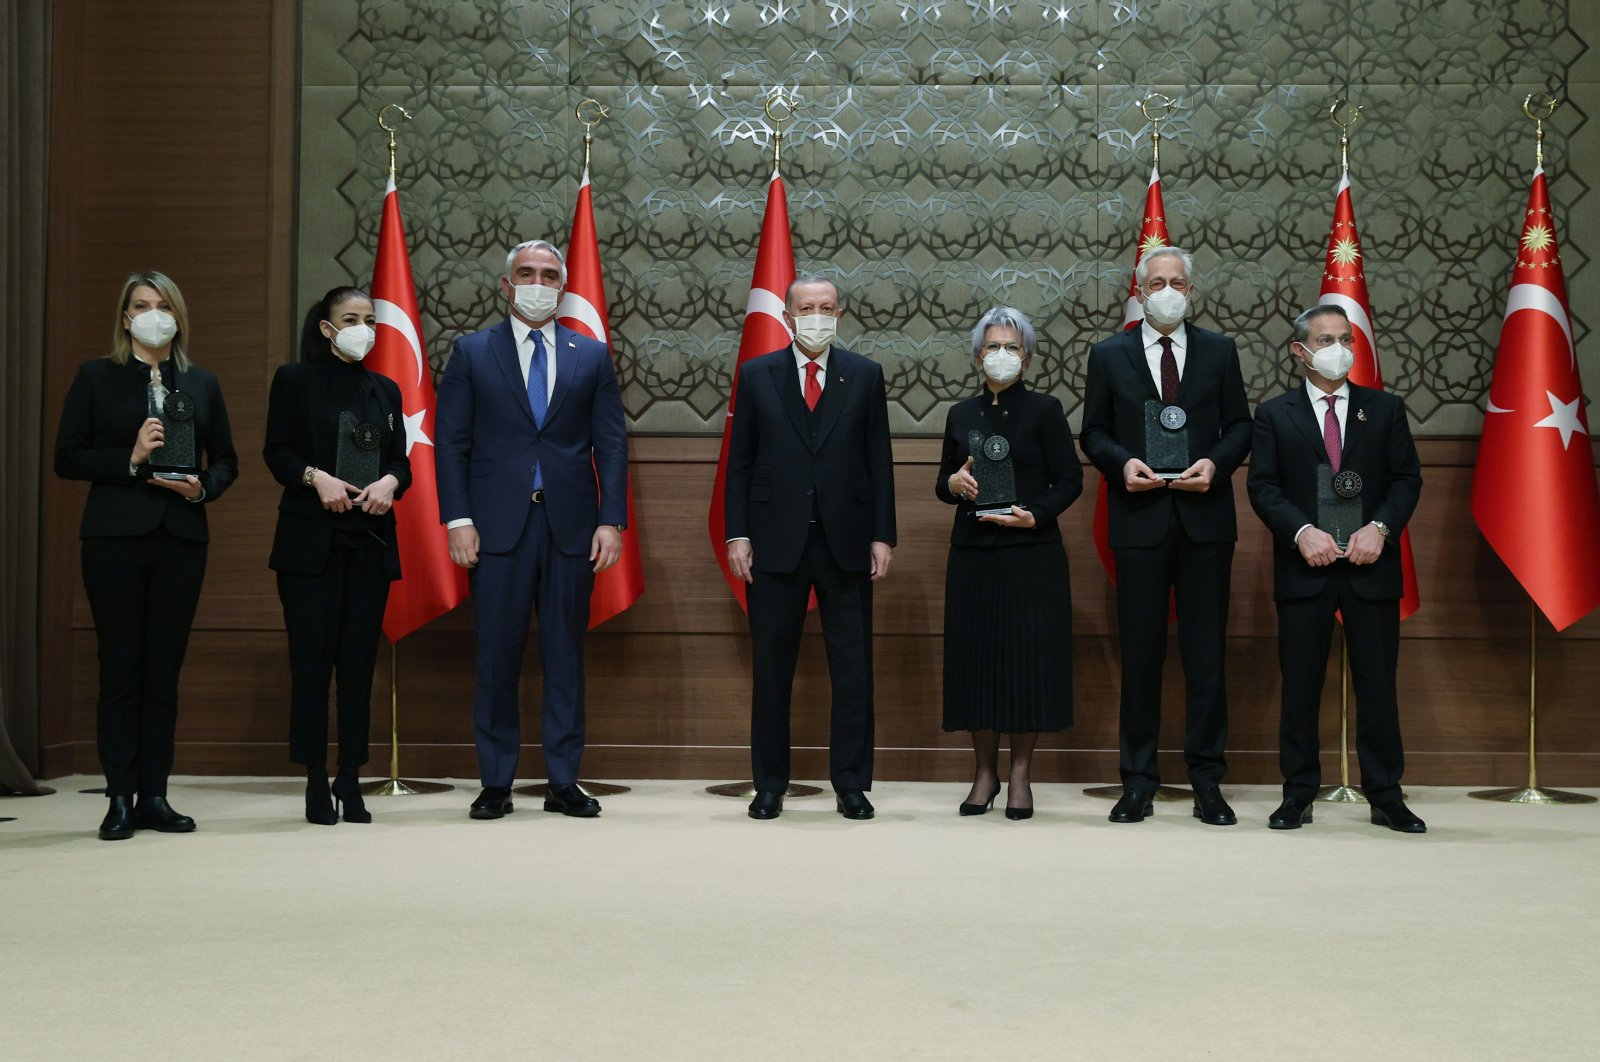 President Recep Tayyip Erdoğan and Culture and Tourism Minister Mehmet Nuri Ersoy pose with the prize winners at the Presidential Conference Hall, Ankara, Turkey, Jan. 20, 2021. (DHA PHOTO)